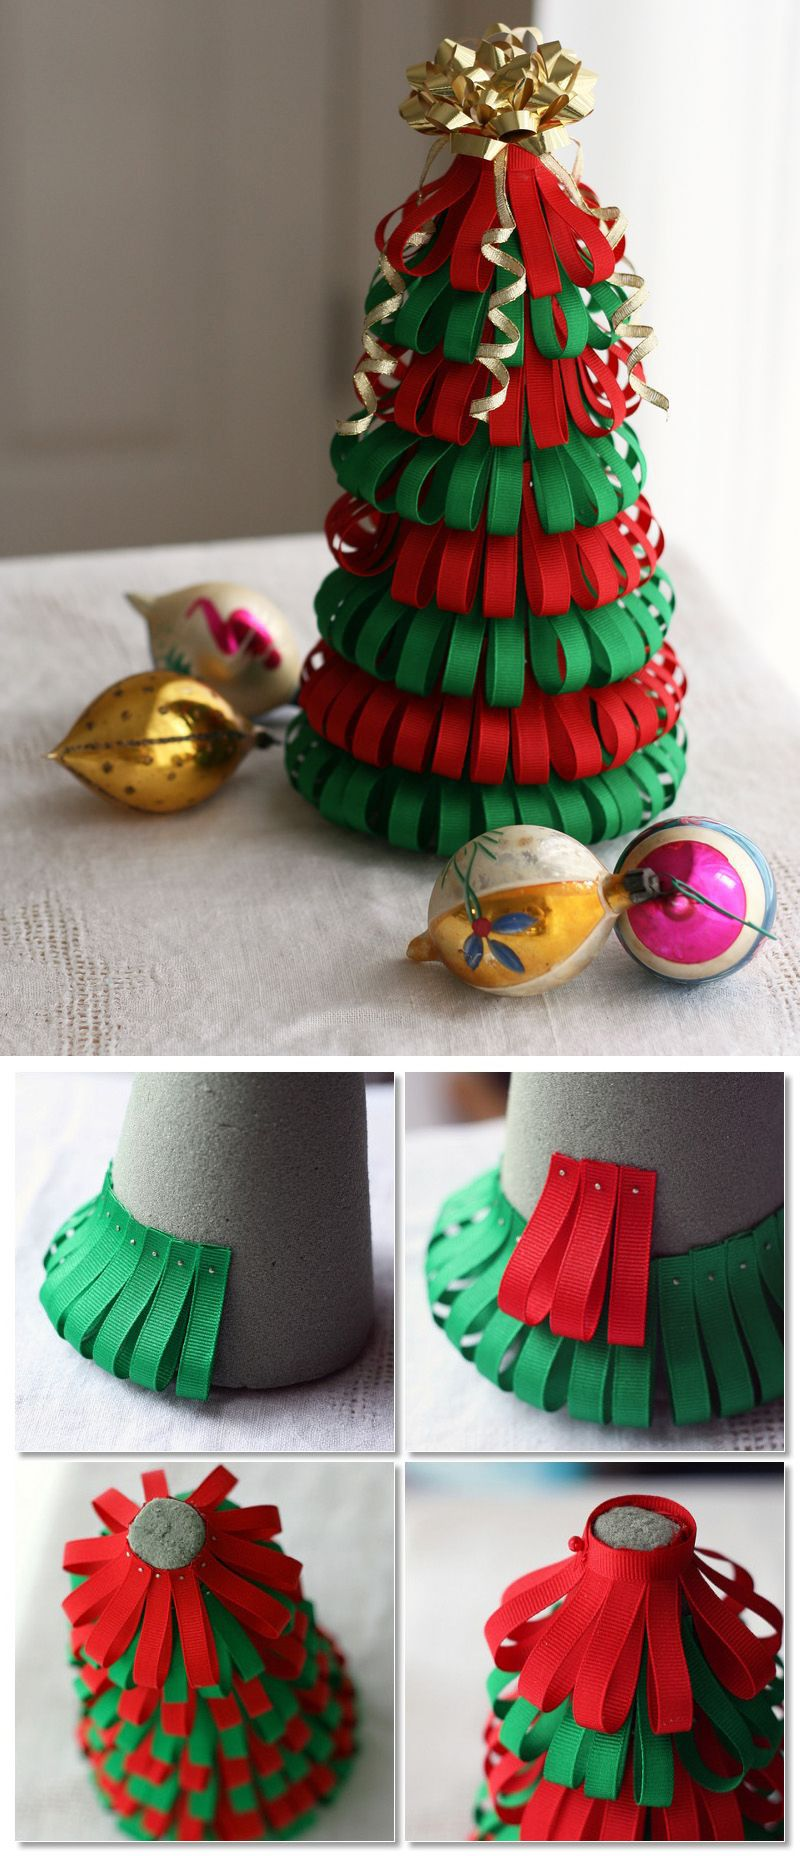 40 Easy and Inexpensive DIY Christmas Tree Decoration Ideas